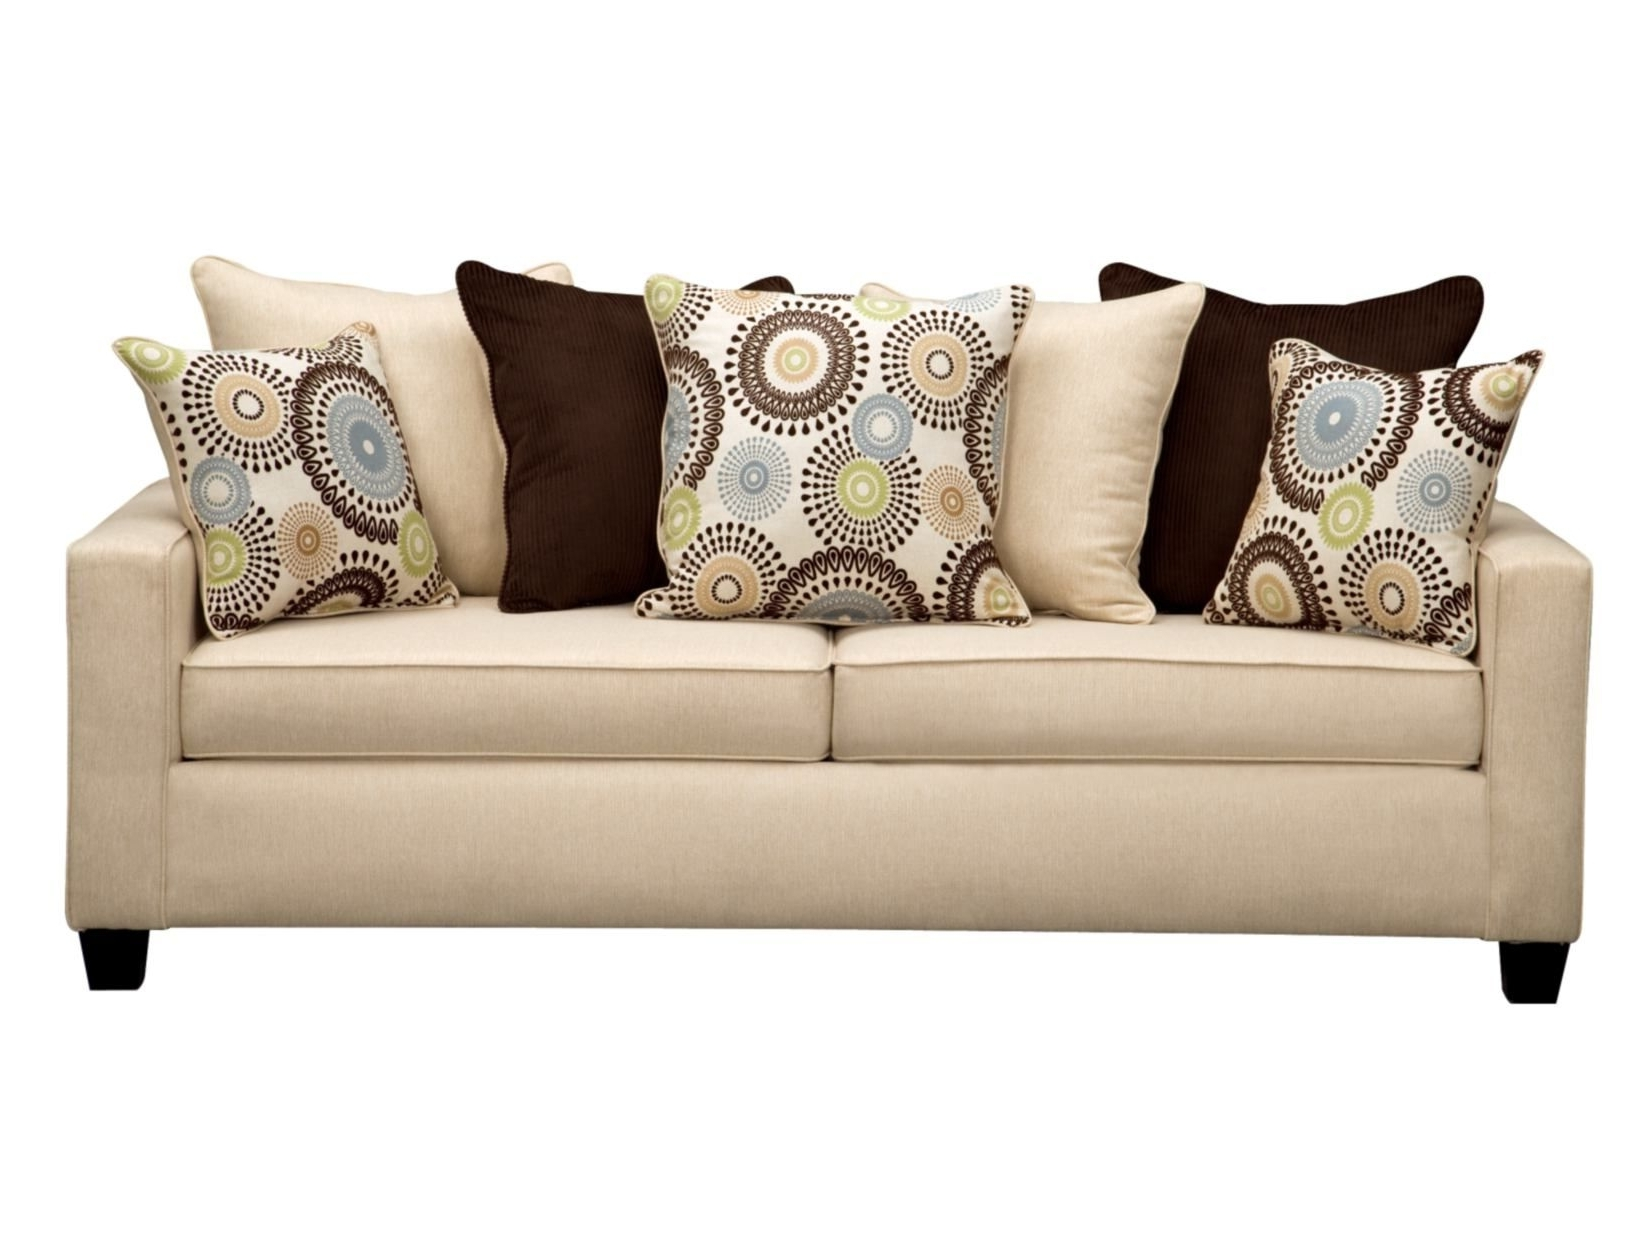 Best And Newest Value City Sofas In Stoked Cream Sofa U2013 Value City  Furniture (View